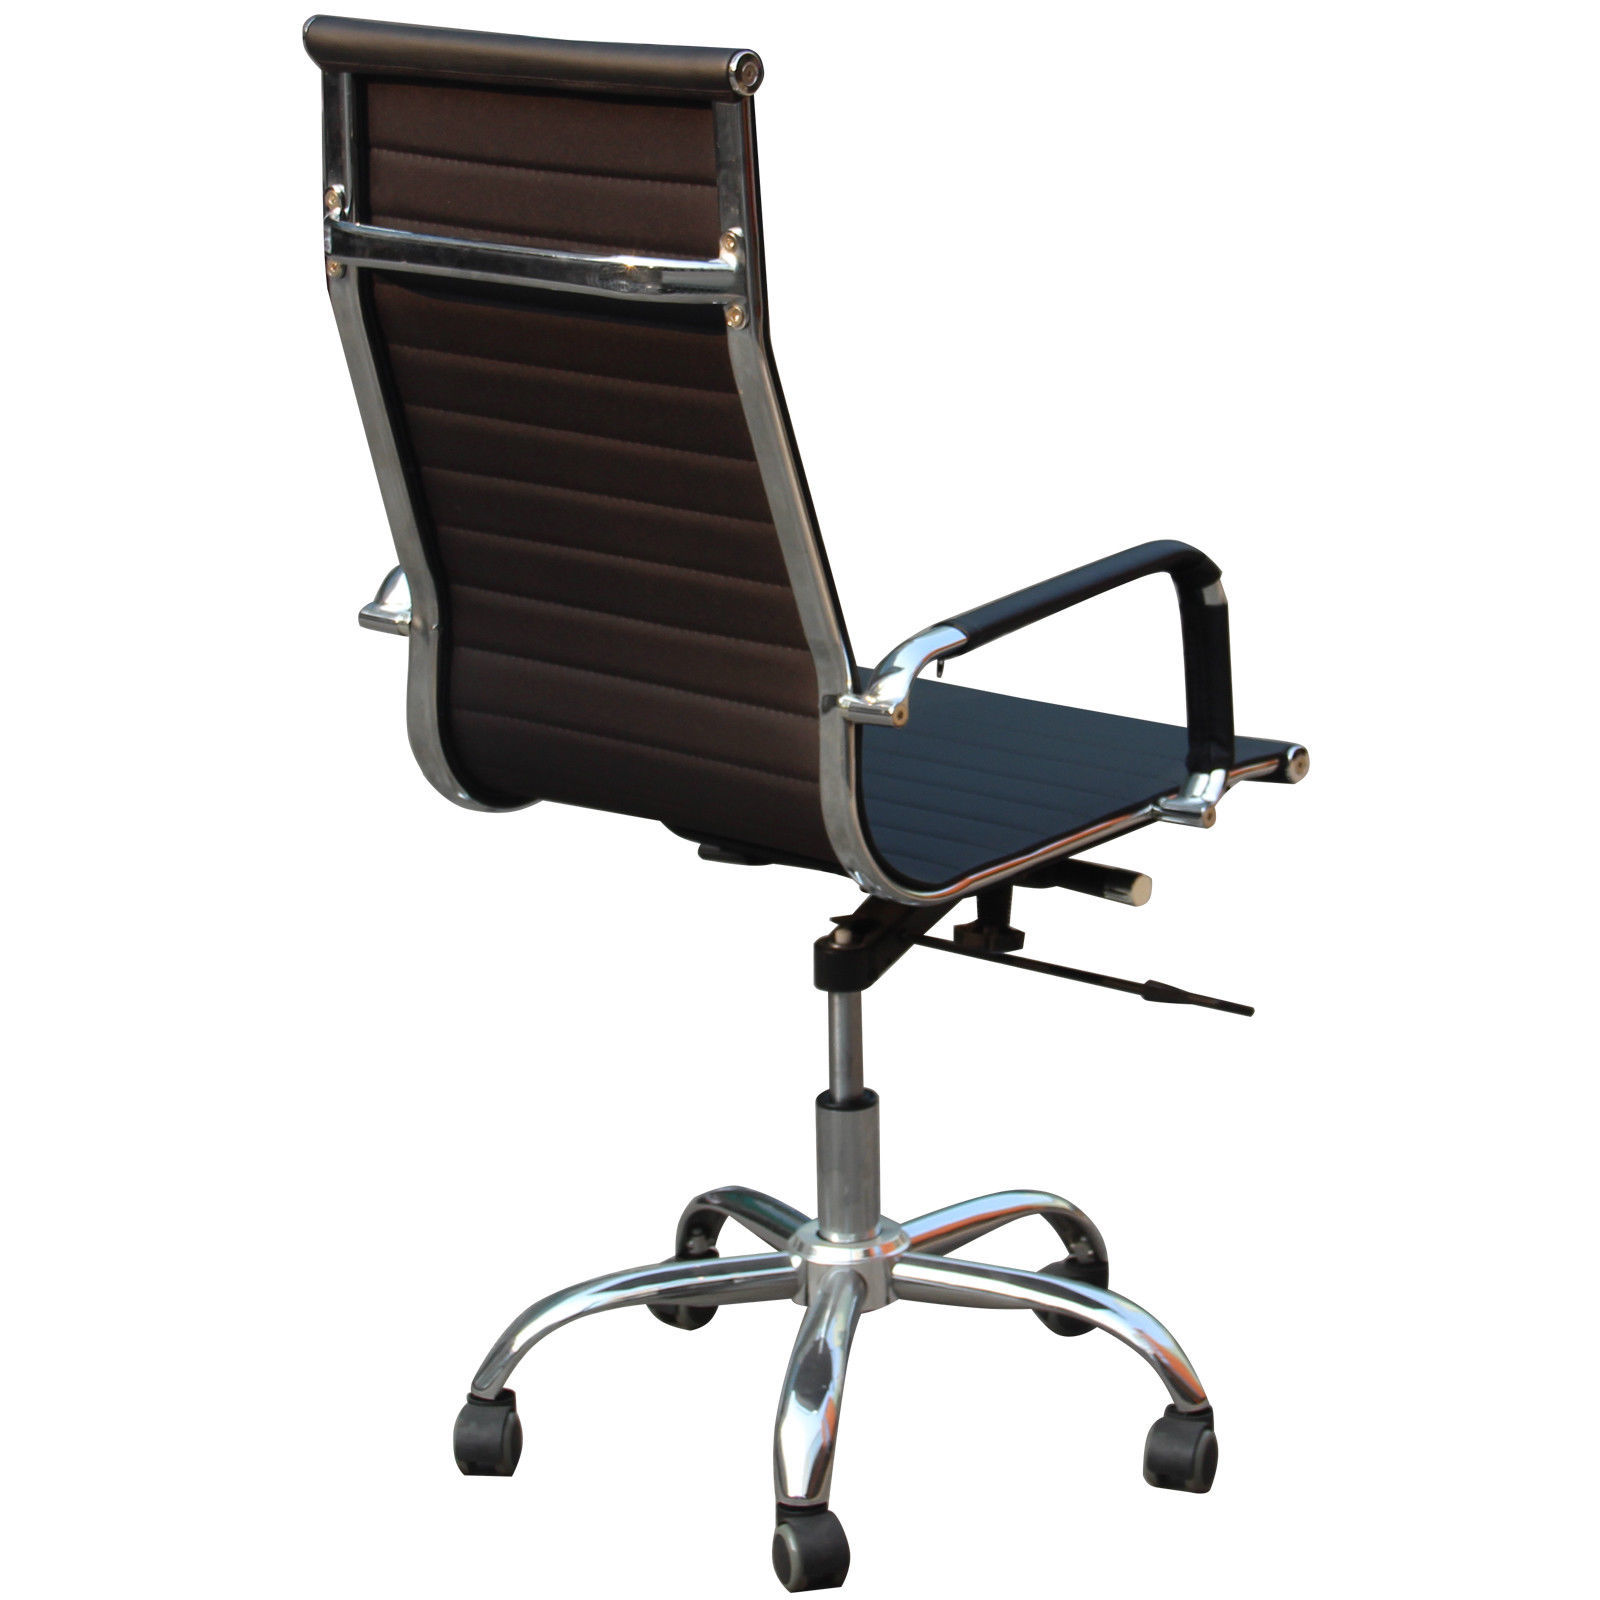 Eames Chair Leather Chair Management Ergonomic Executive Swivel Office Chair